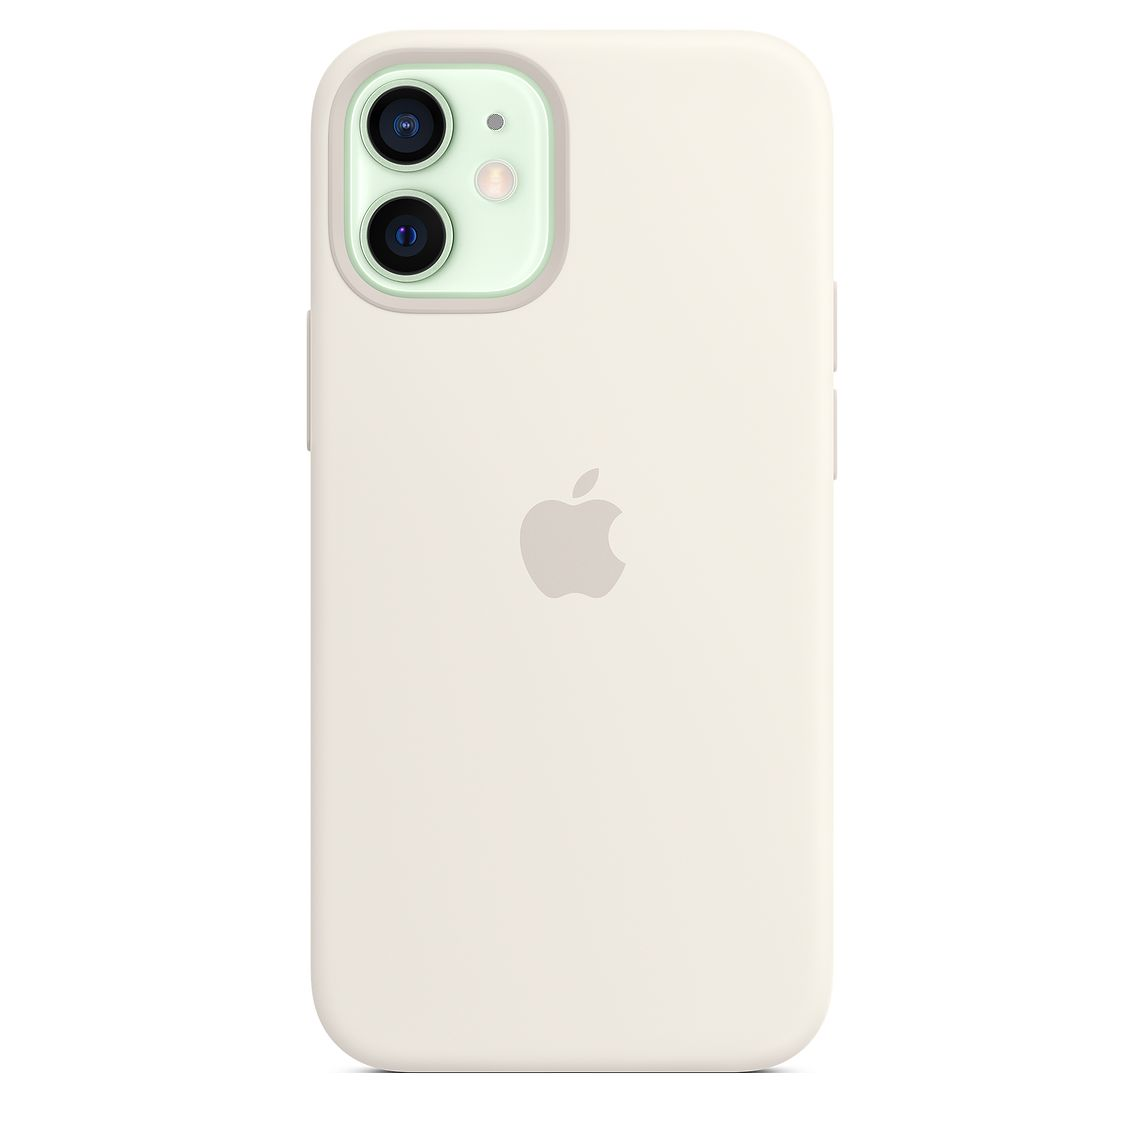 - iPhone 12 mini Silicone Case with MagSafe / Blanco 4